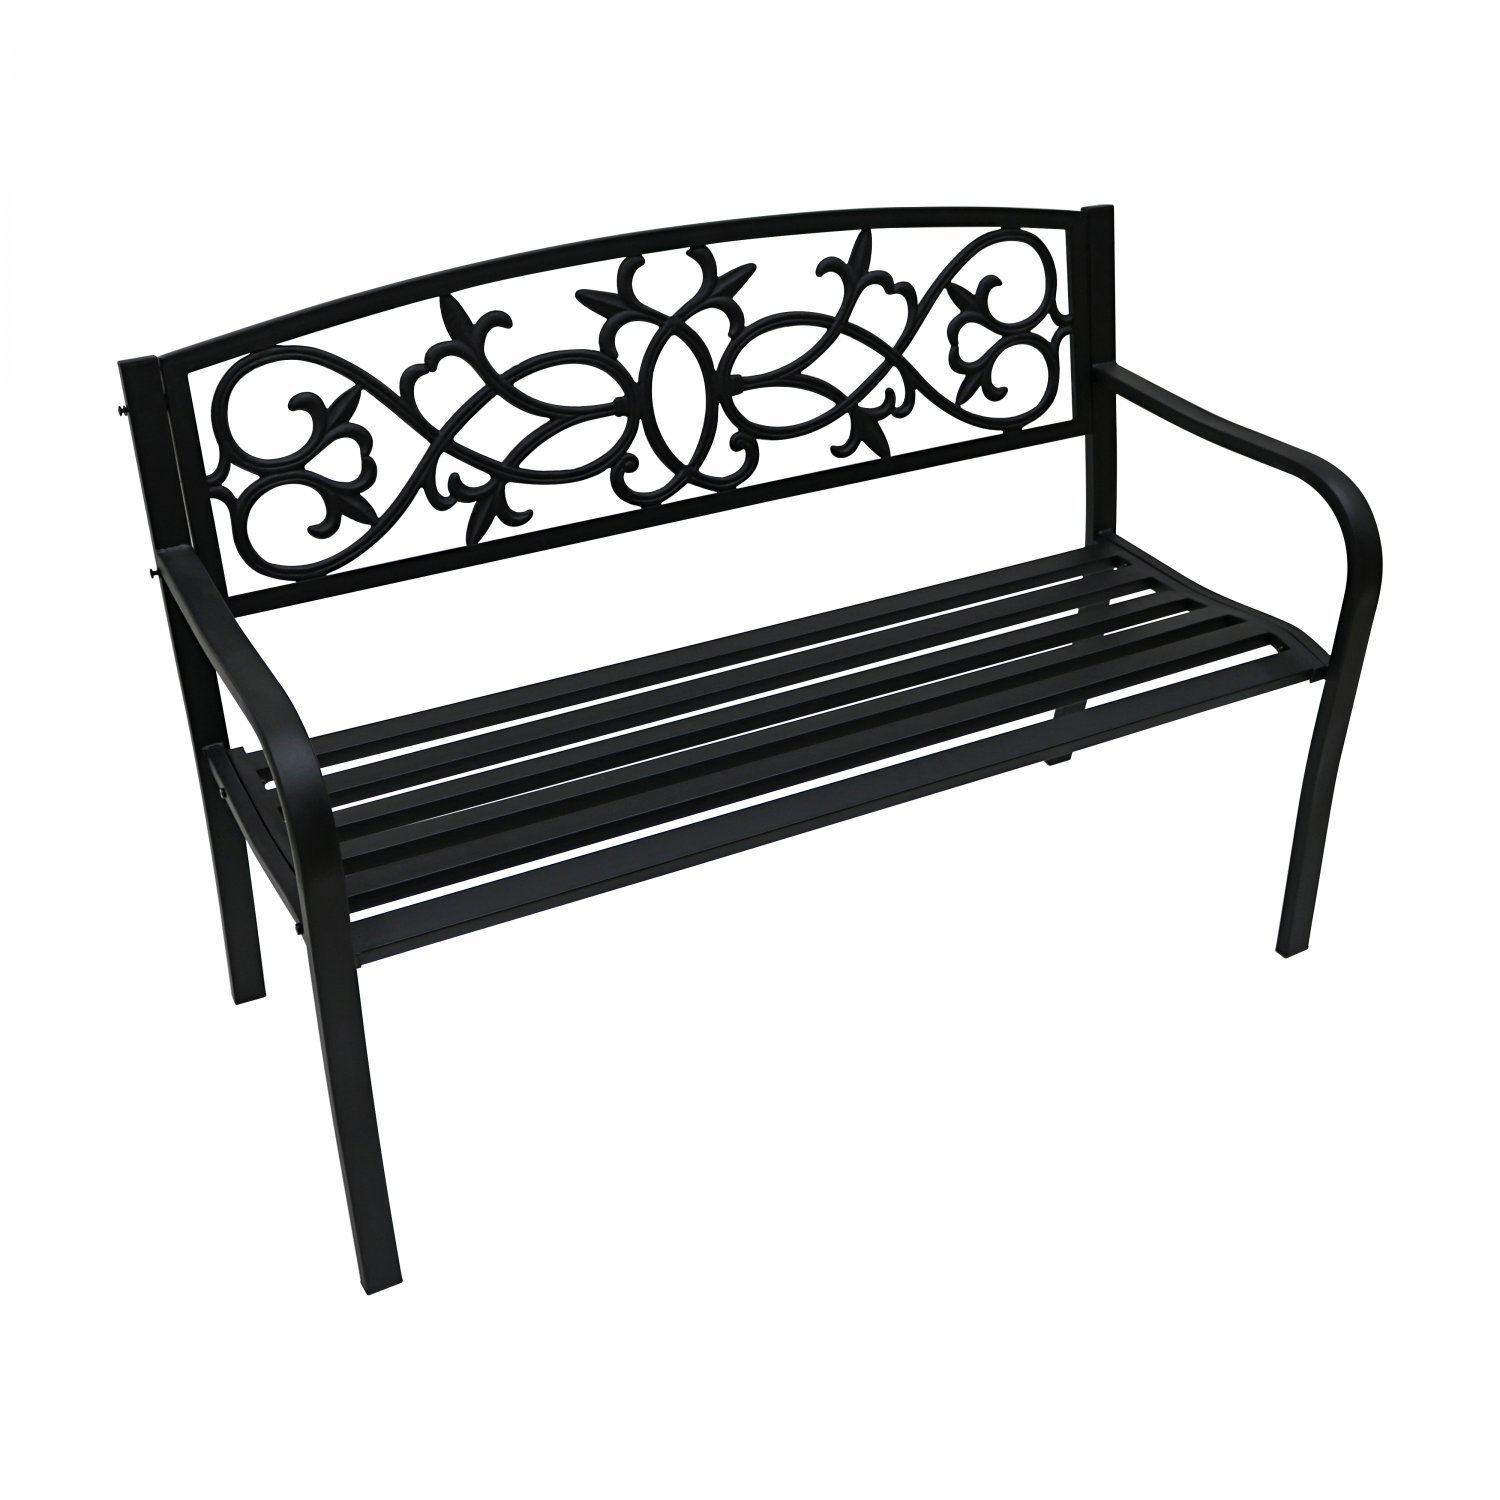 Awe Inspiring 2 Seater Black Metal Outdoor Garden Bench Seat Patio Park Chair Gmtry Best Dining Table And Chair Ideas Images Gmtryco